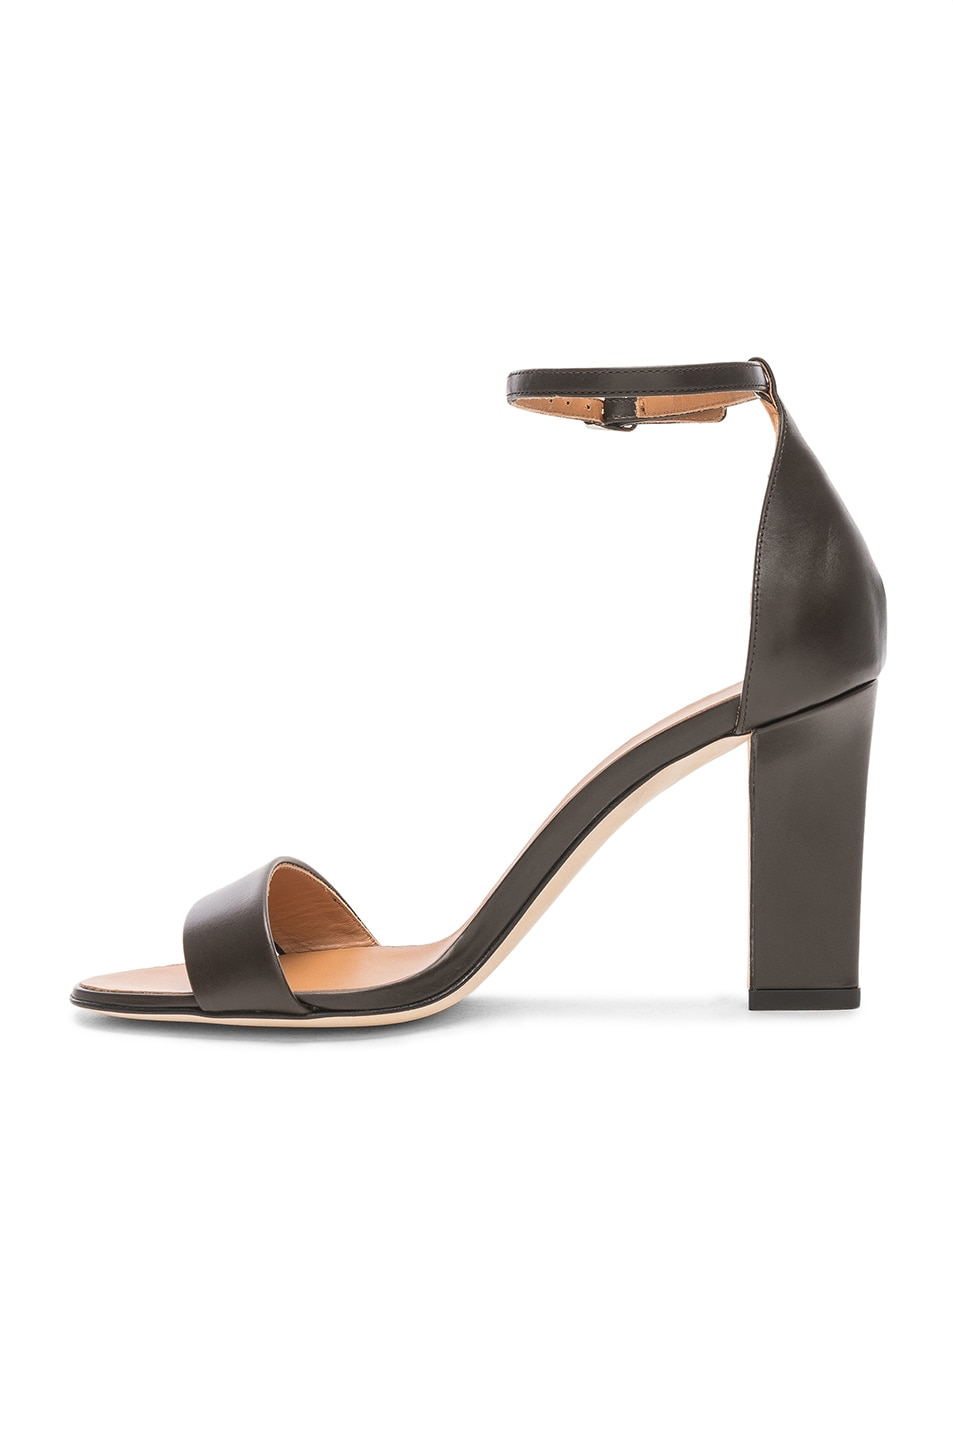 Image 5 of Victoria Beckham Leather Anna Ankle Strap Sandals in Khaki